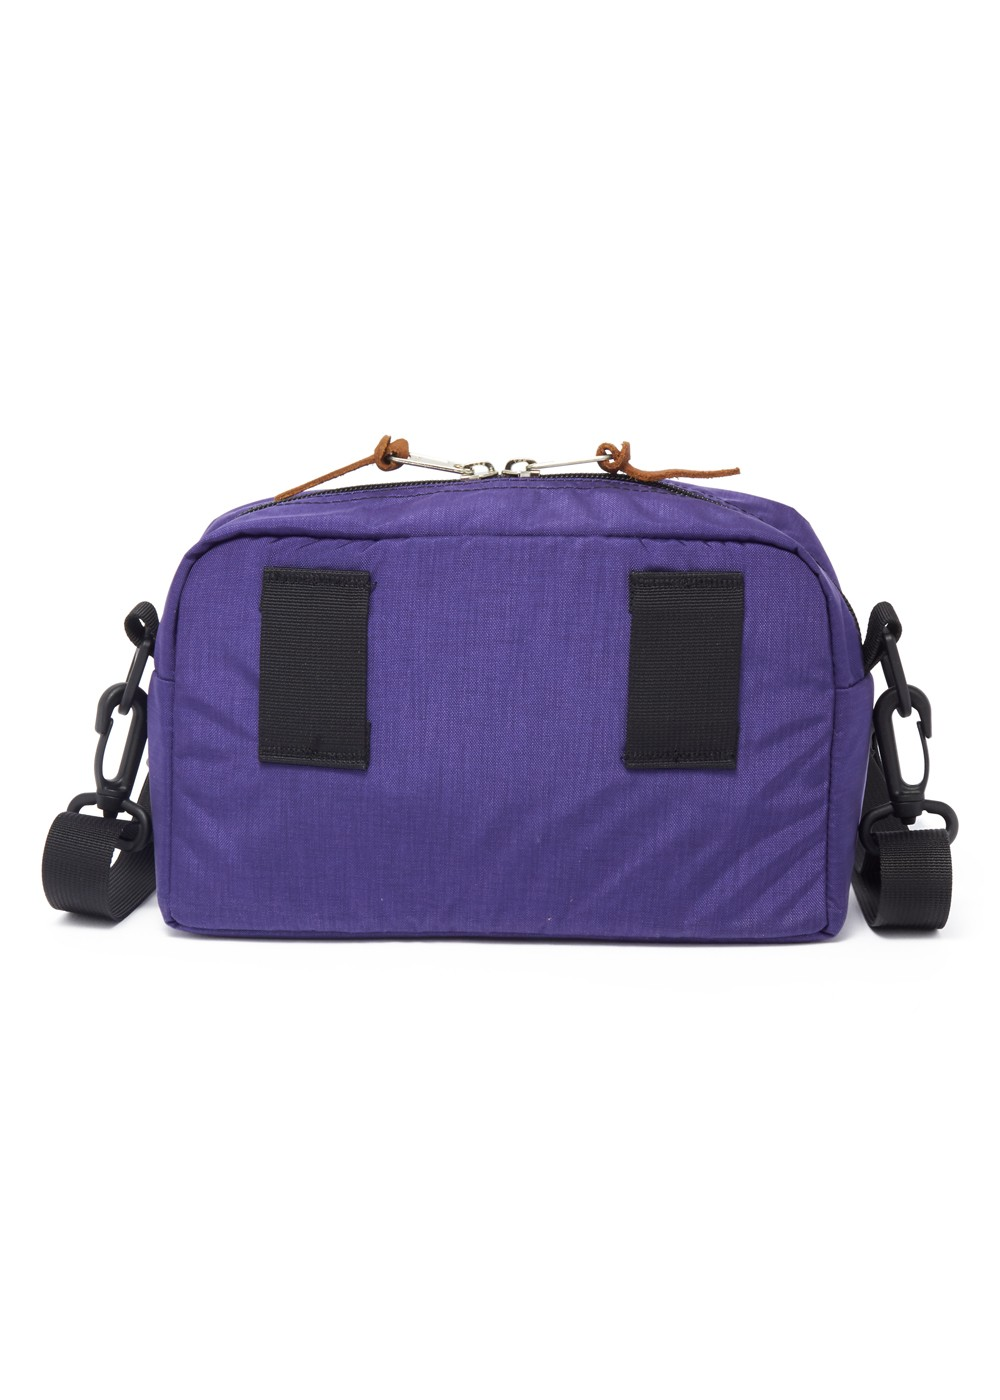 【最大31%OFF】【12/25入荷】PAD SHOULDER POUCH M|ULTRAVIOLET|ショルダーバッグ|GREGORY